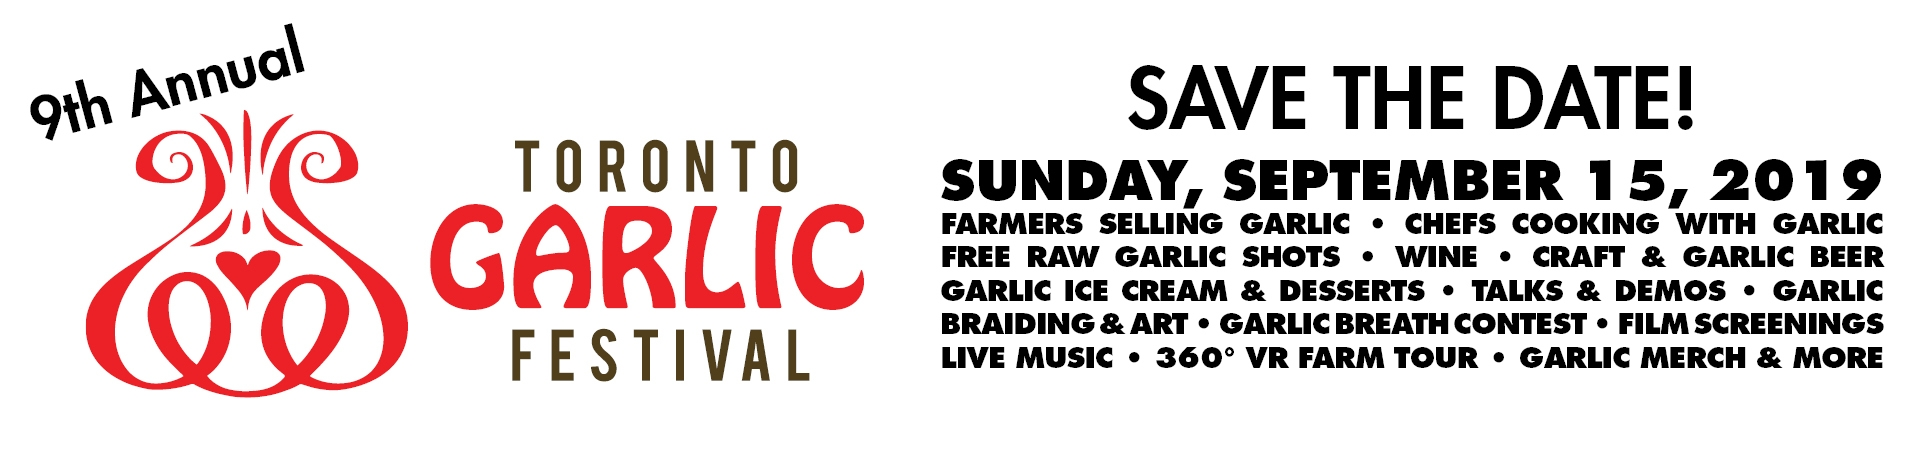 Garlic Quotes – Toronto Garlic Festival